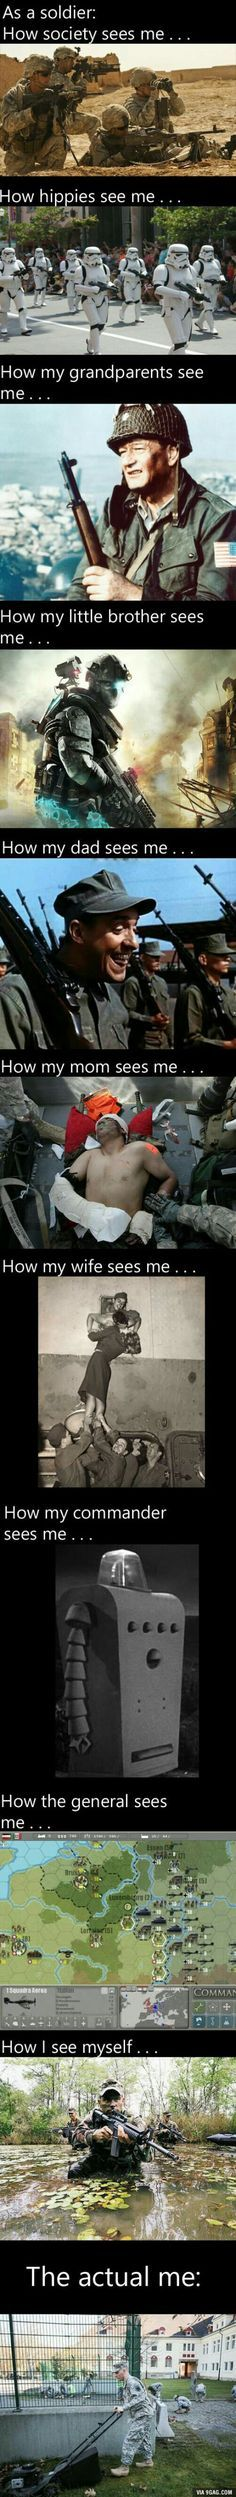 How others see me as a soldier More